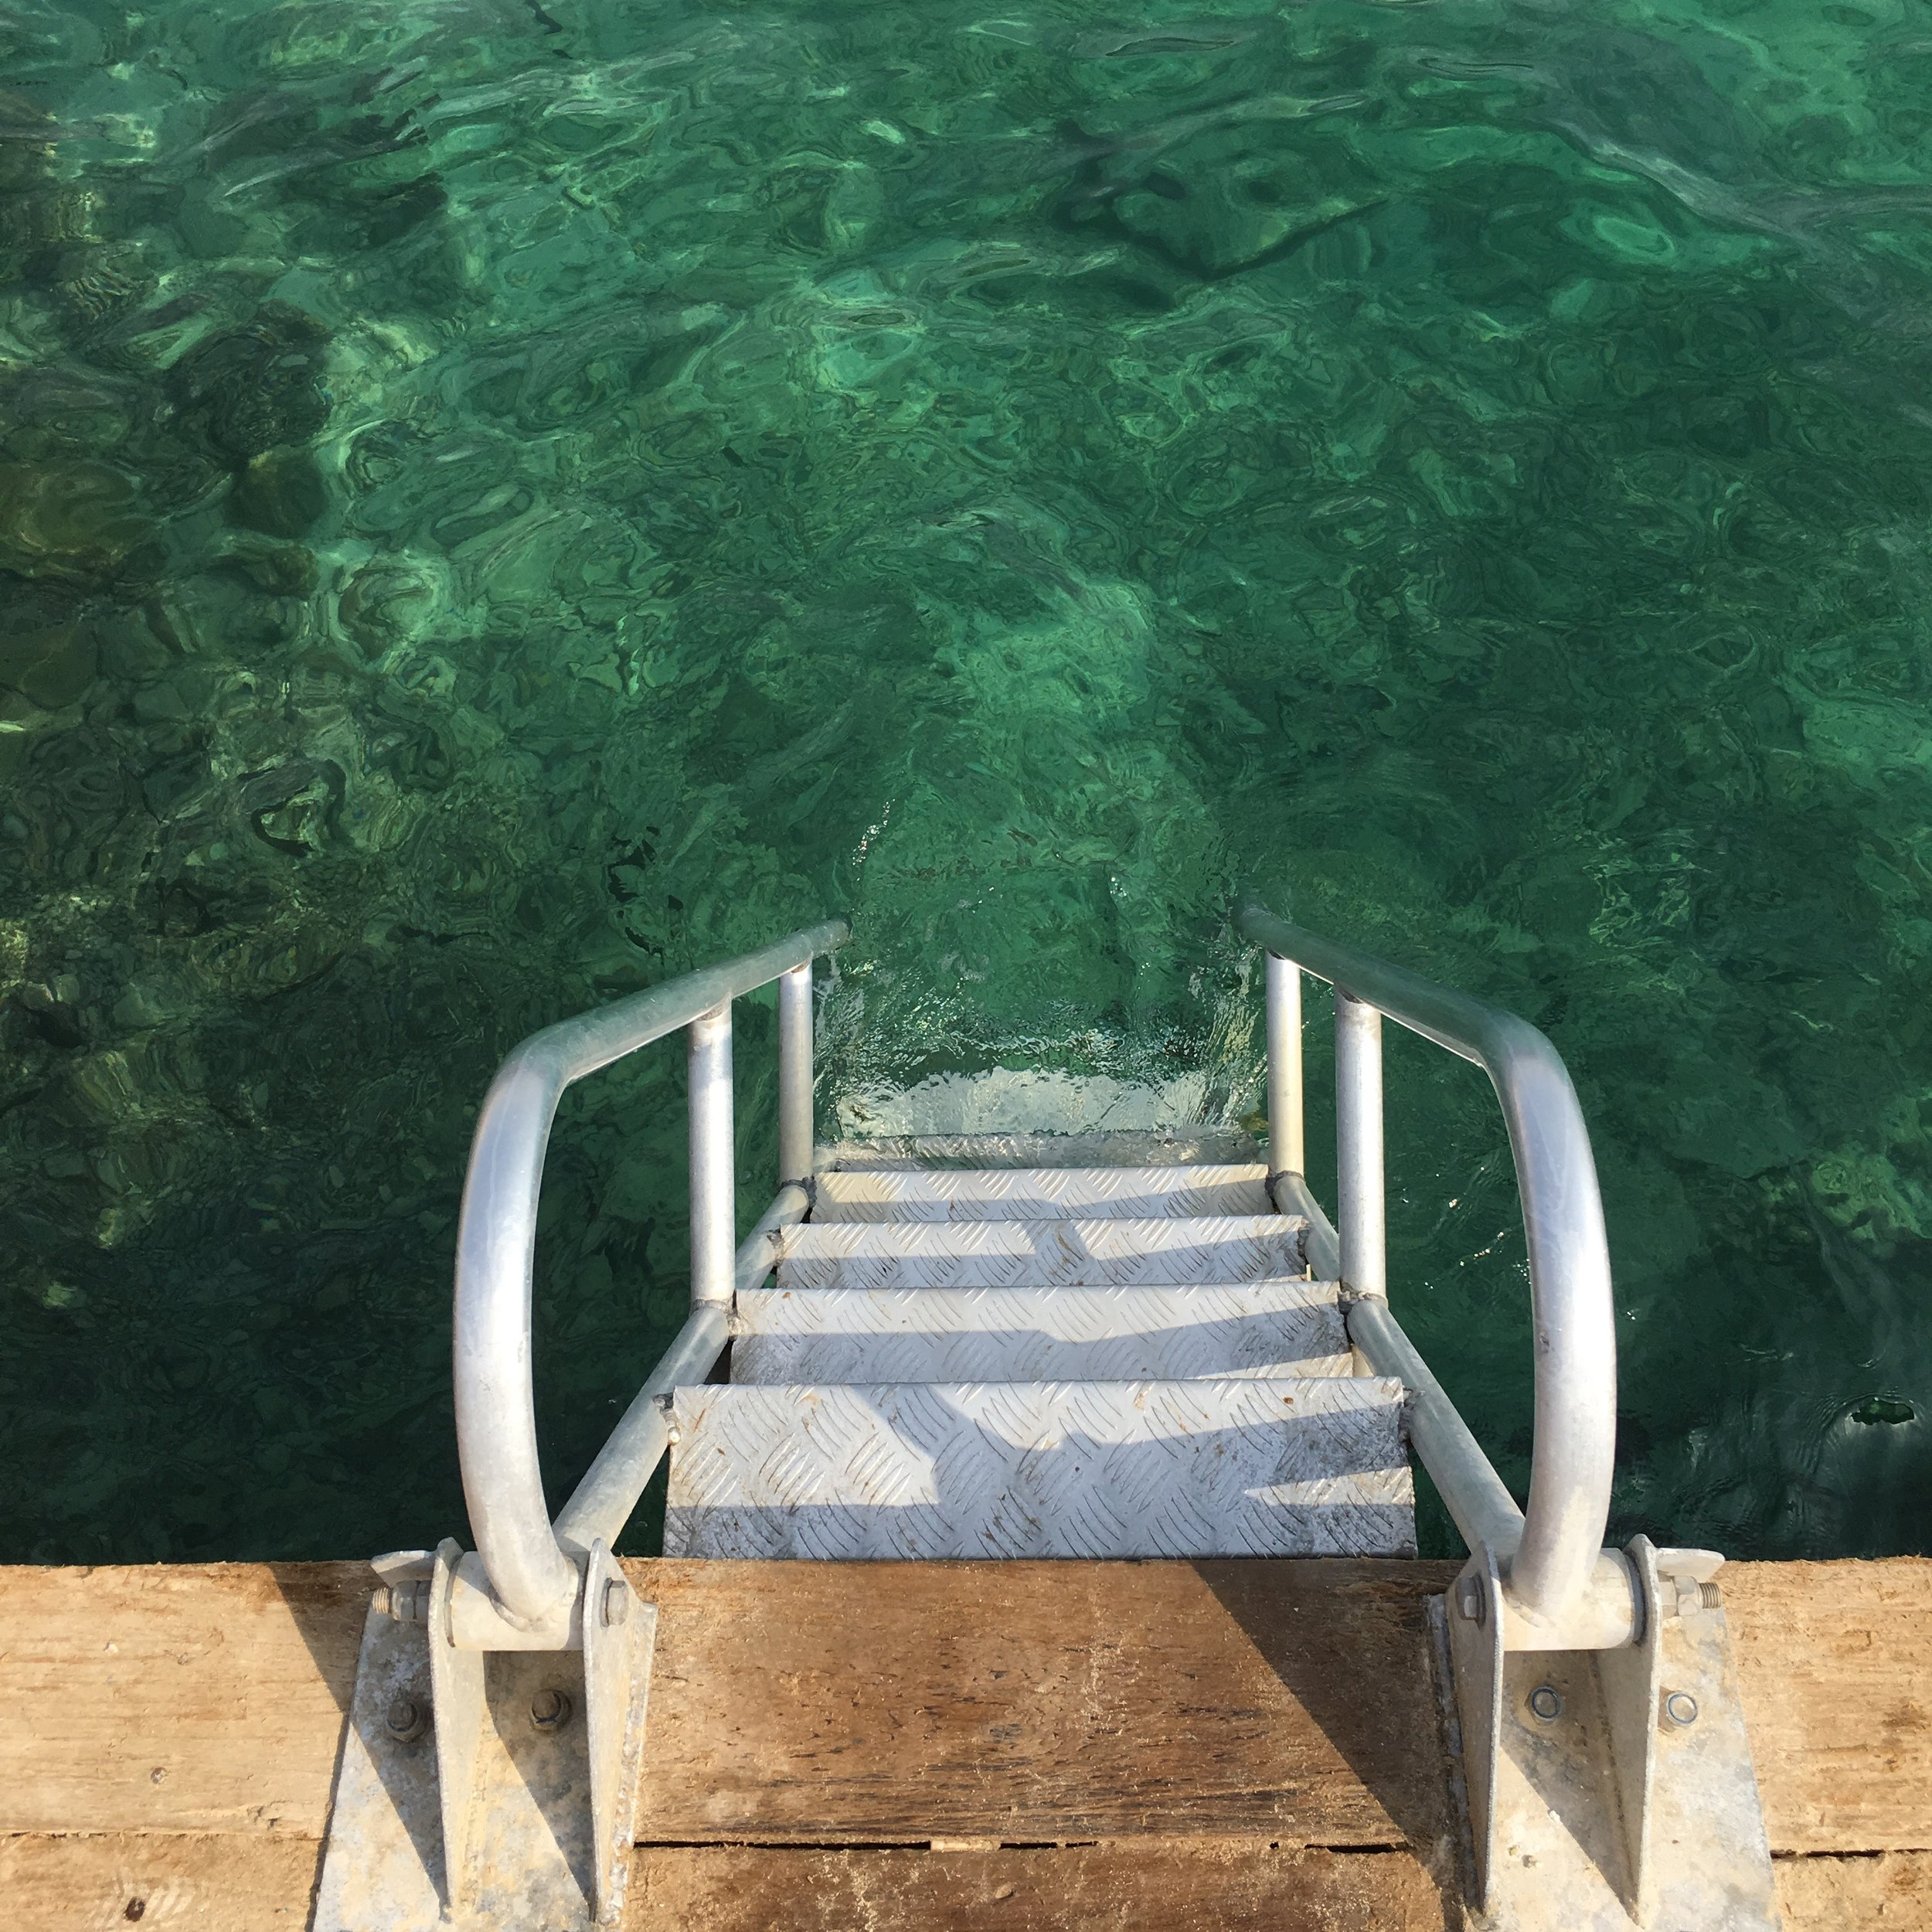 The stair from the wooden deck down to the beautiful water